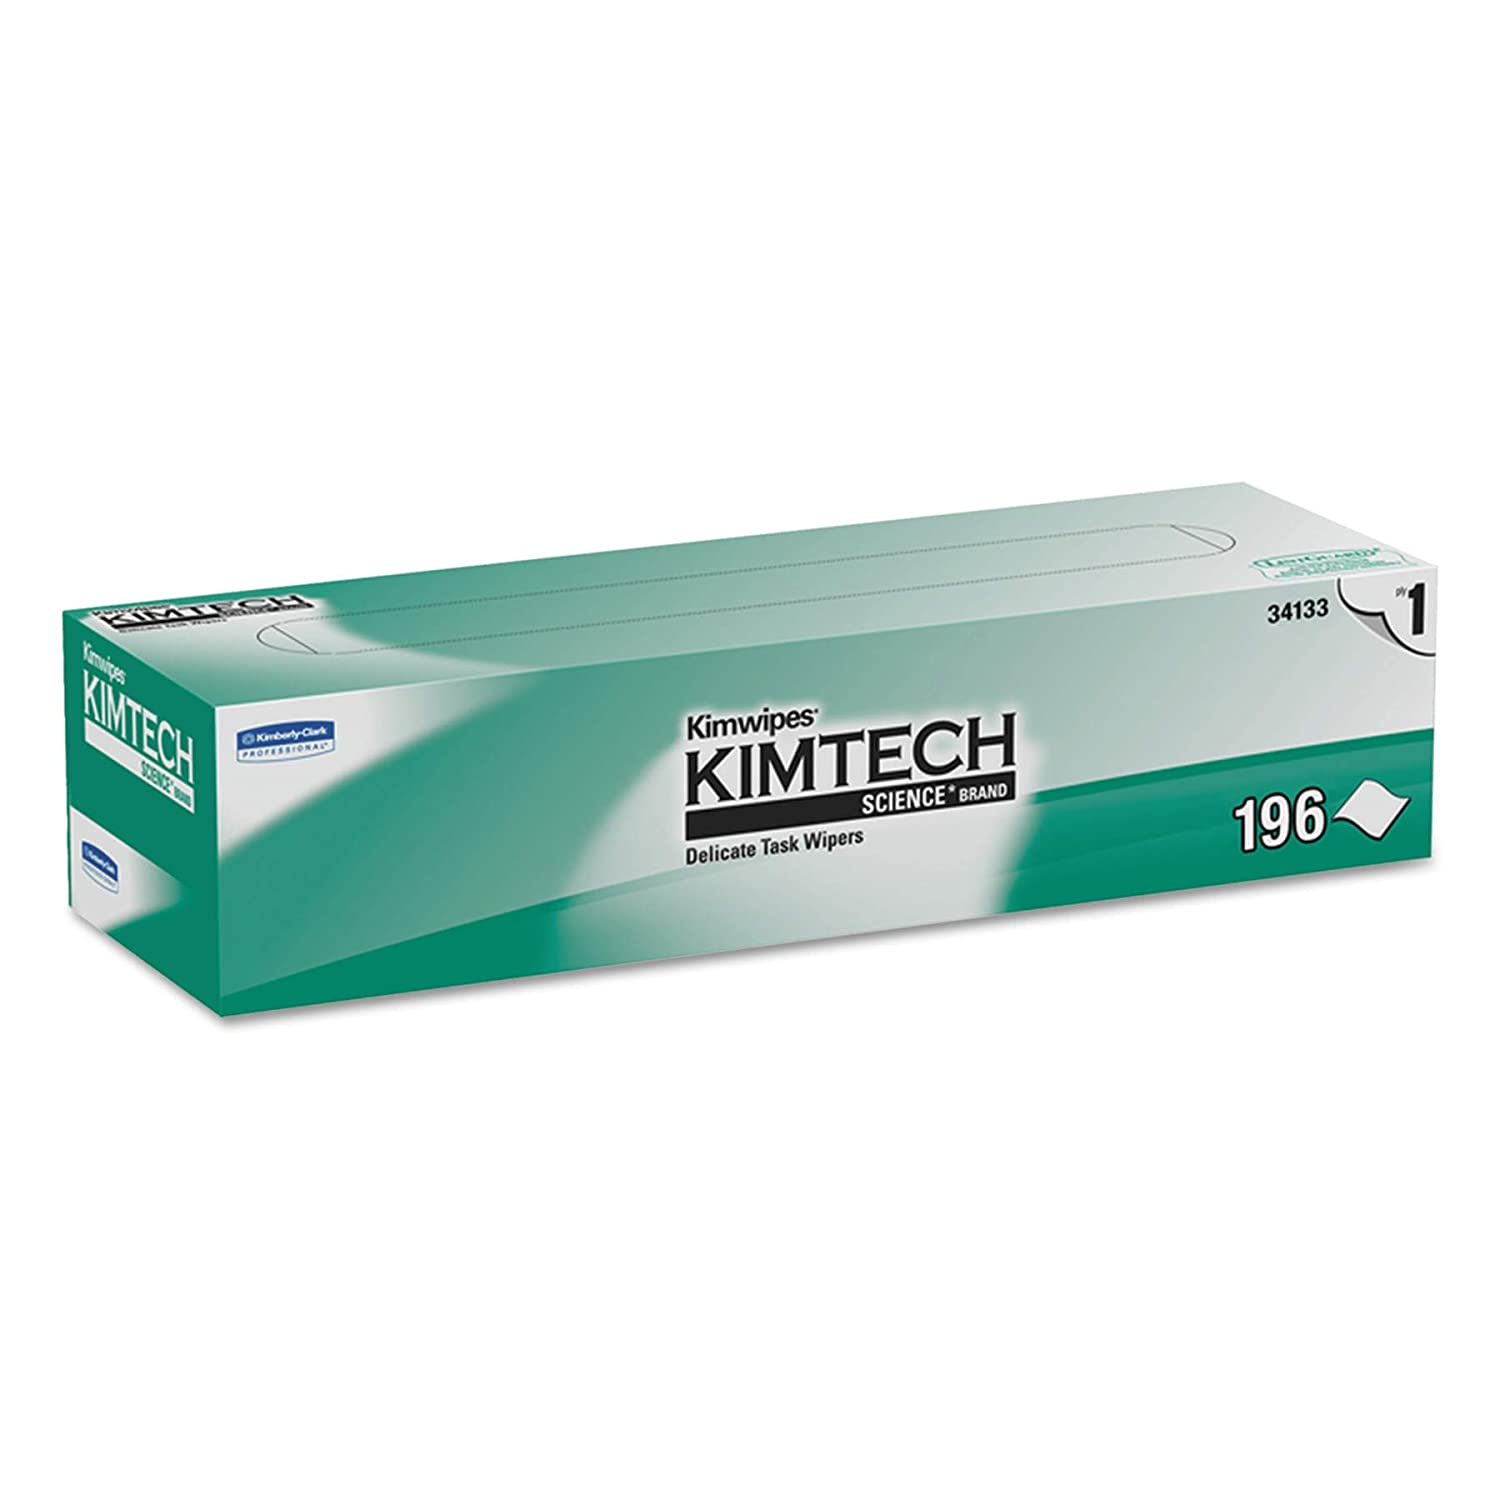 Kimtech 34133 Super beauty product restock quality top Kimwipes Delicate Task Wipers 4 11 5 Gifts 1-Ply x